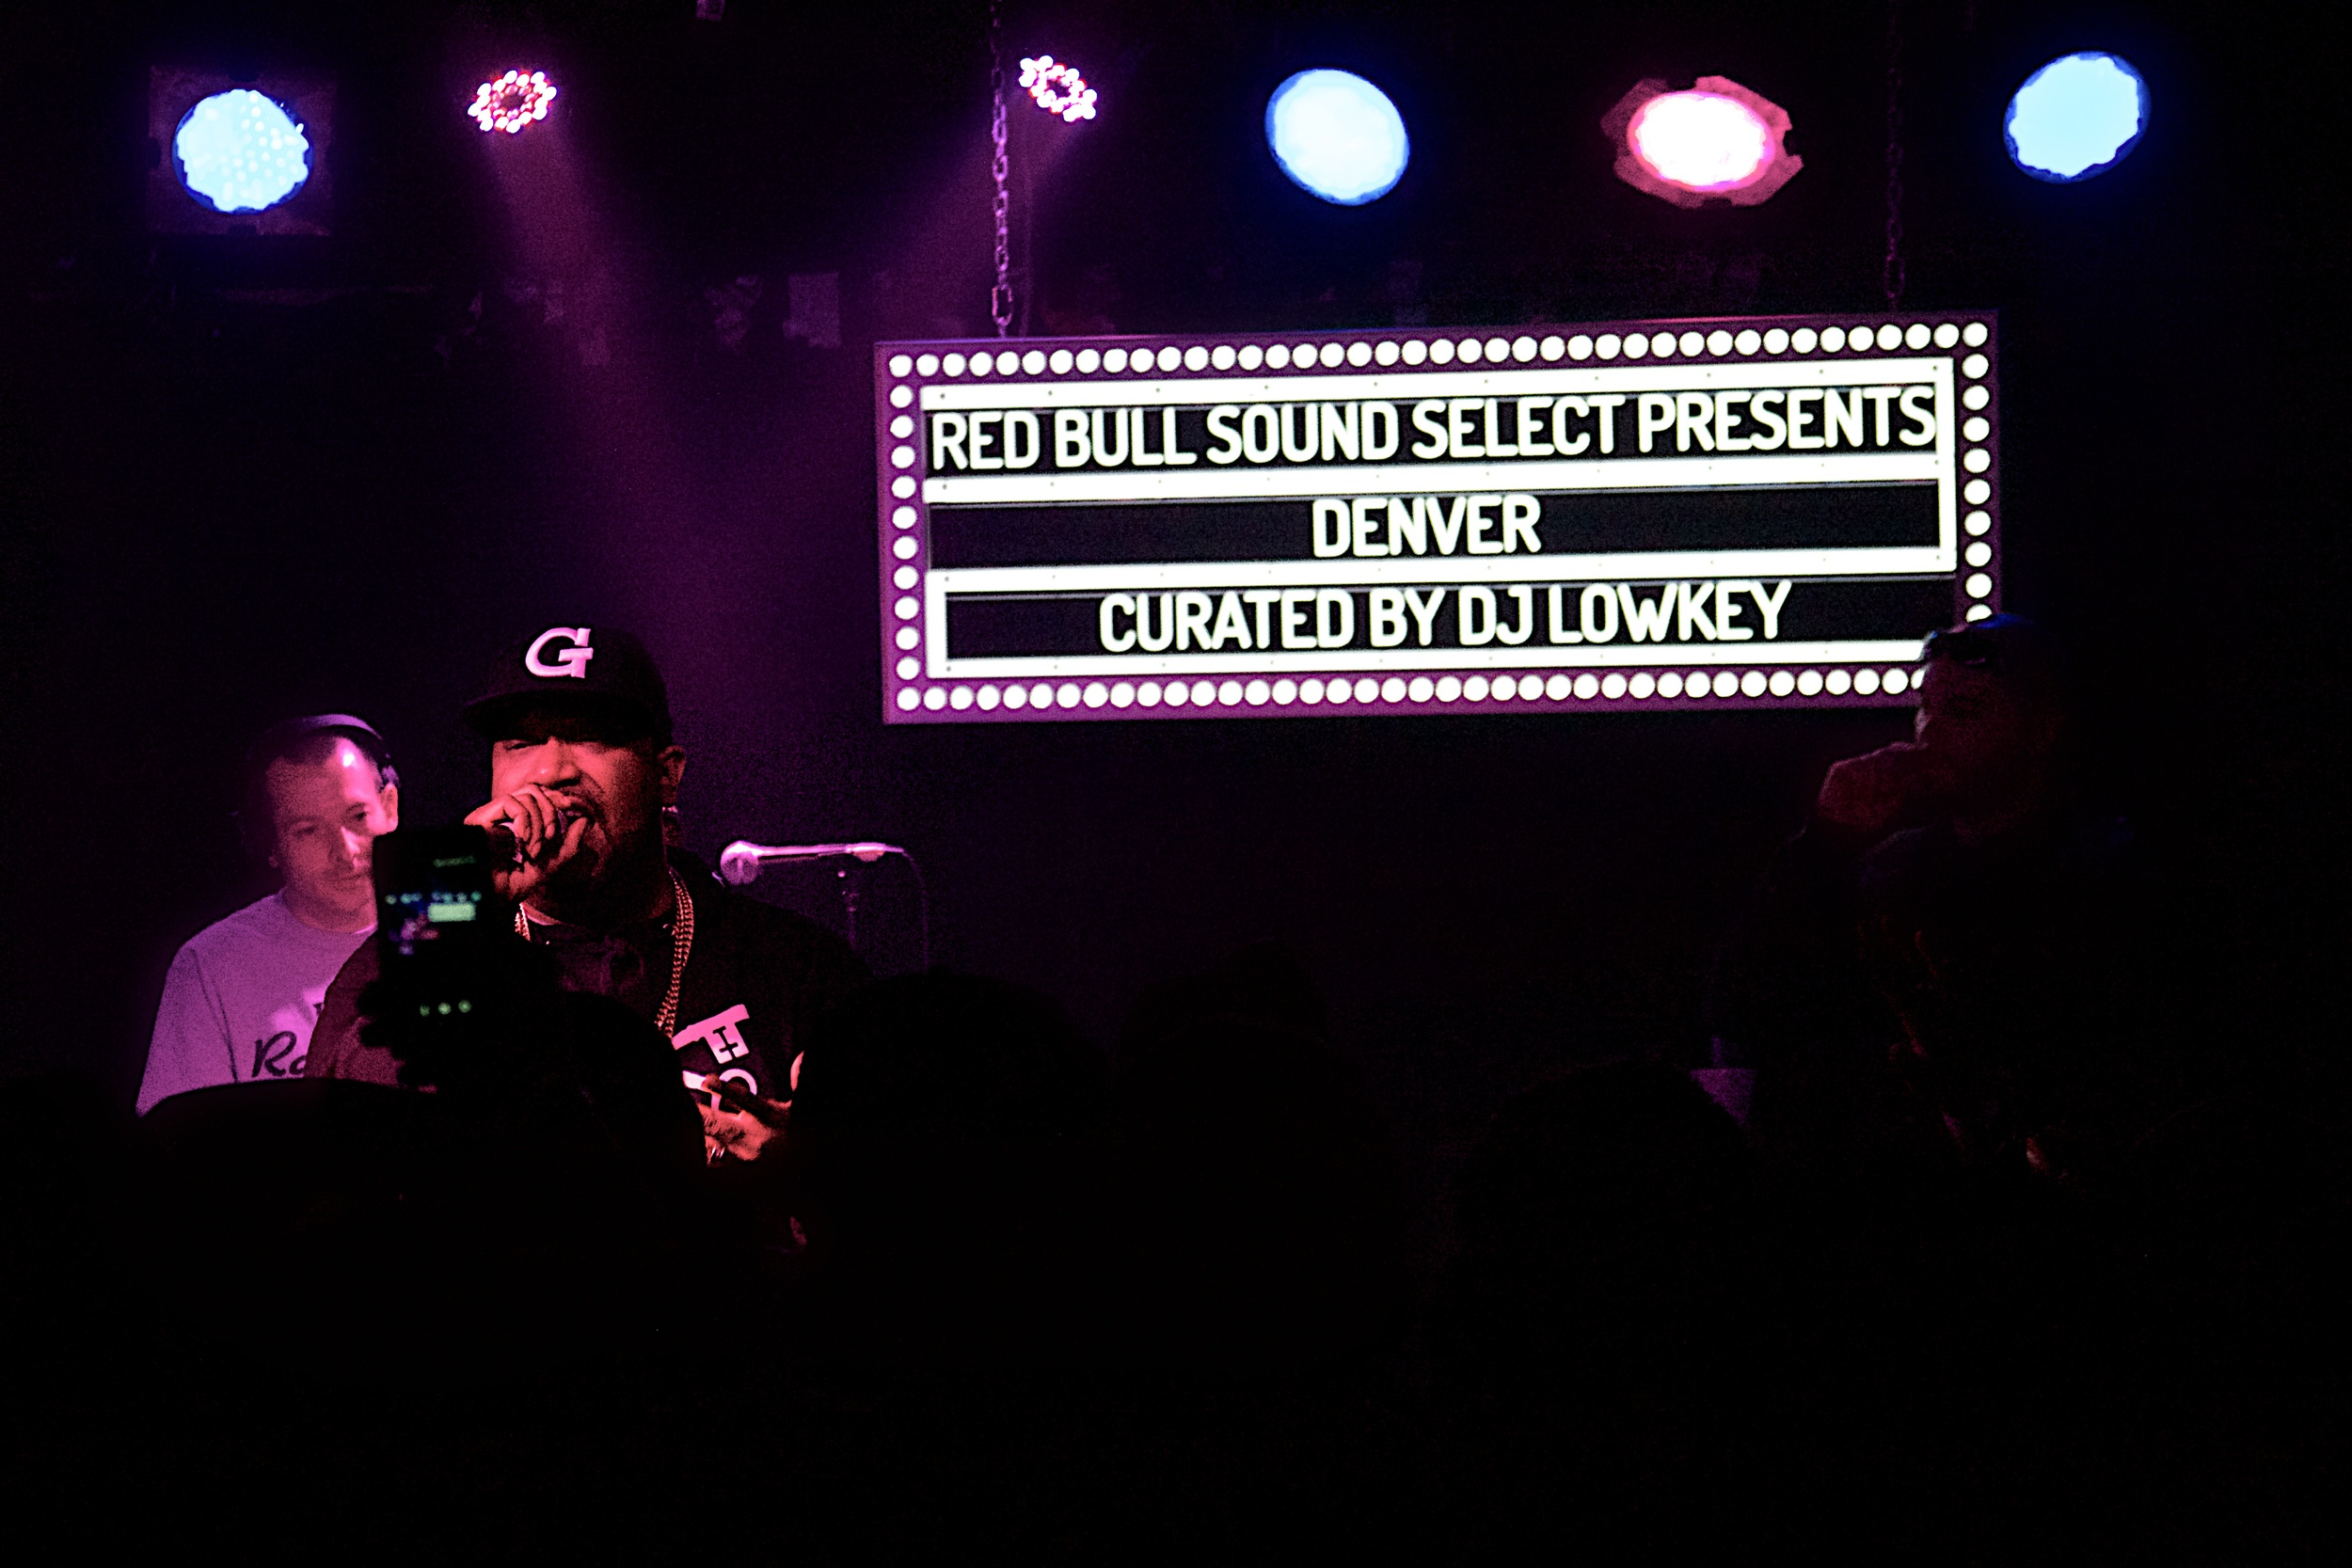 Red Bull Sound Select Presents Bun B: Curated by DJ Low Key (Photo Credit: Robert Castro